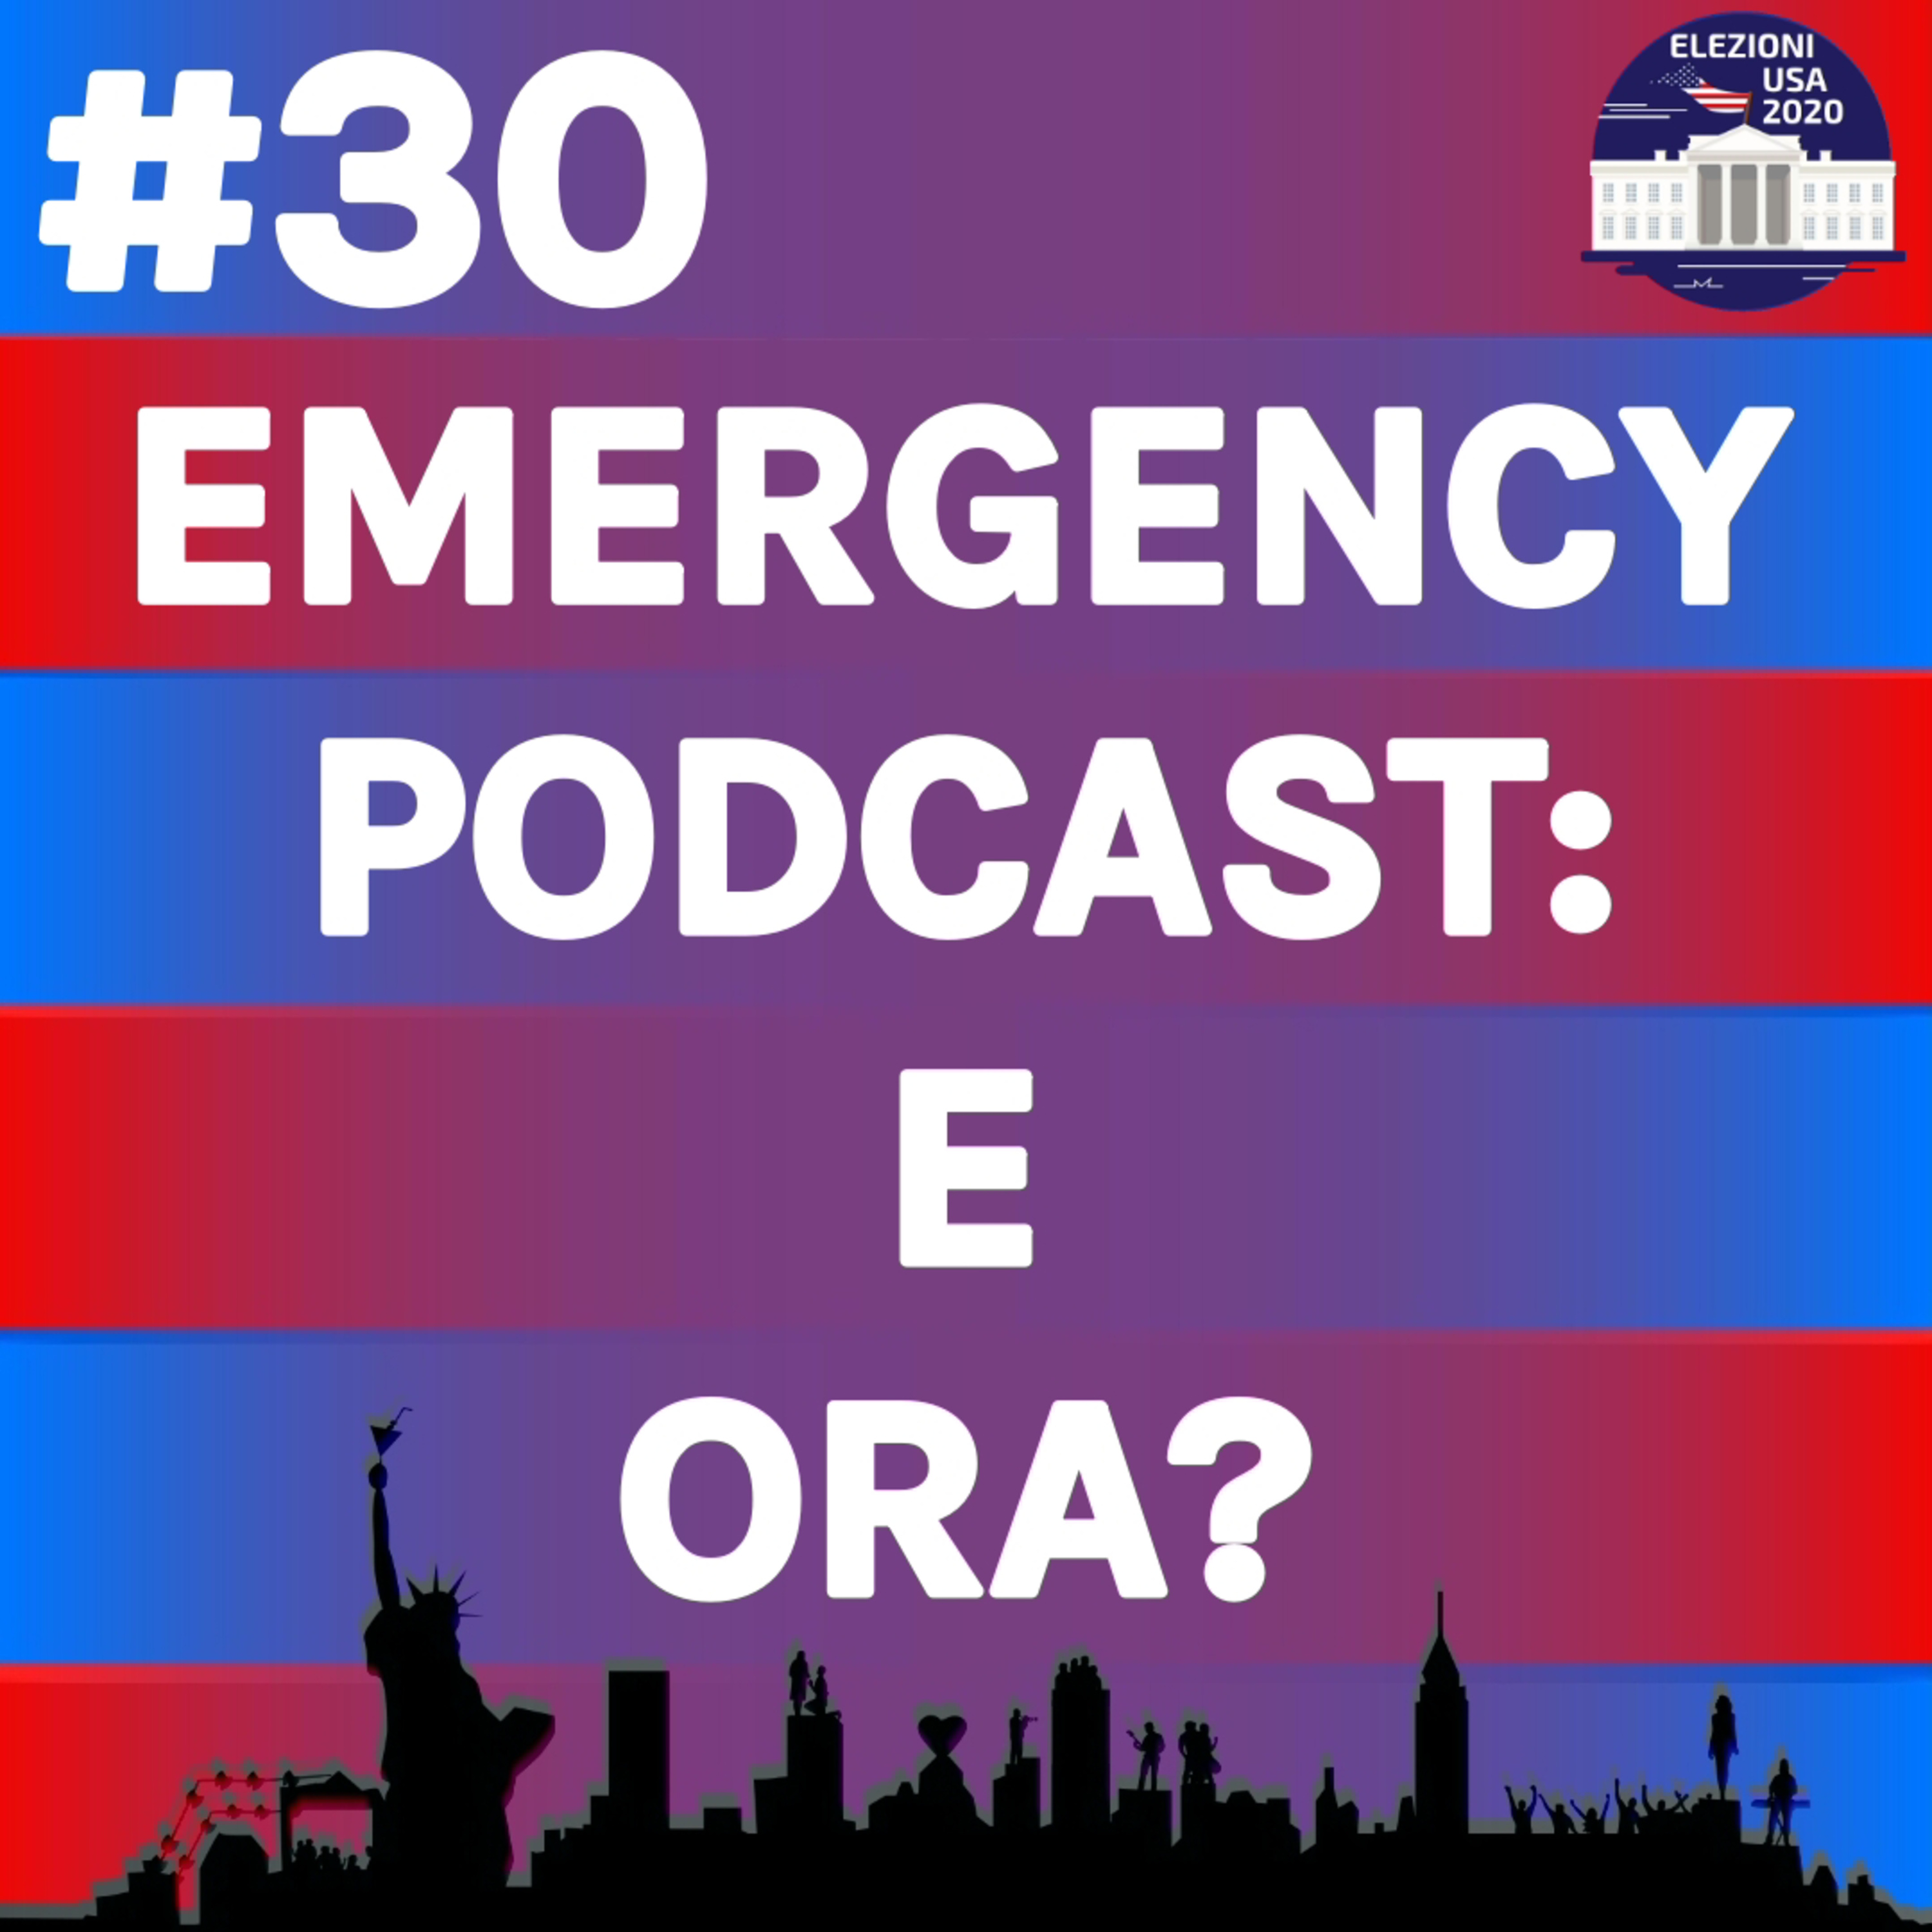 Emergency Podcast: E ora?